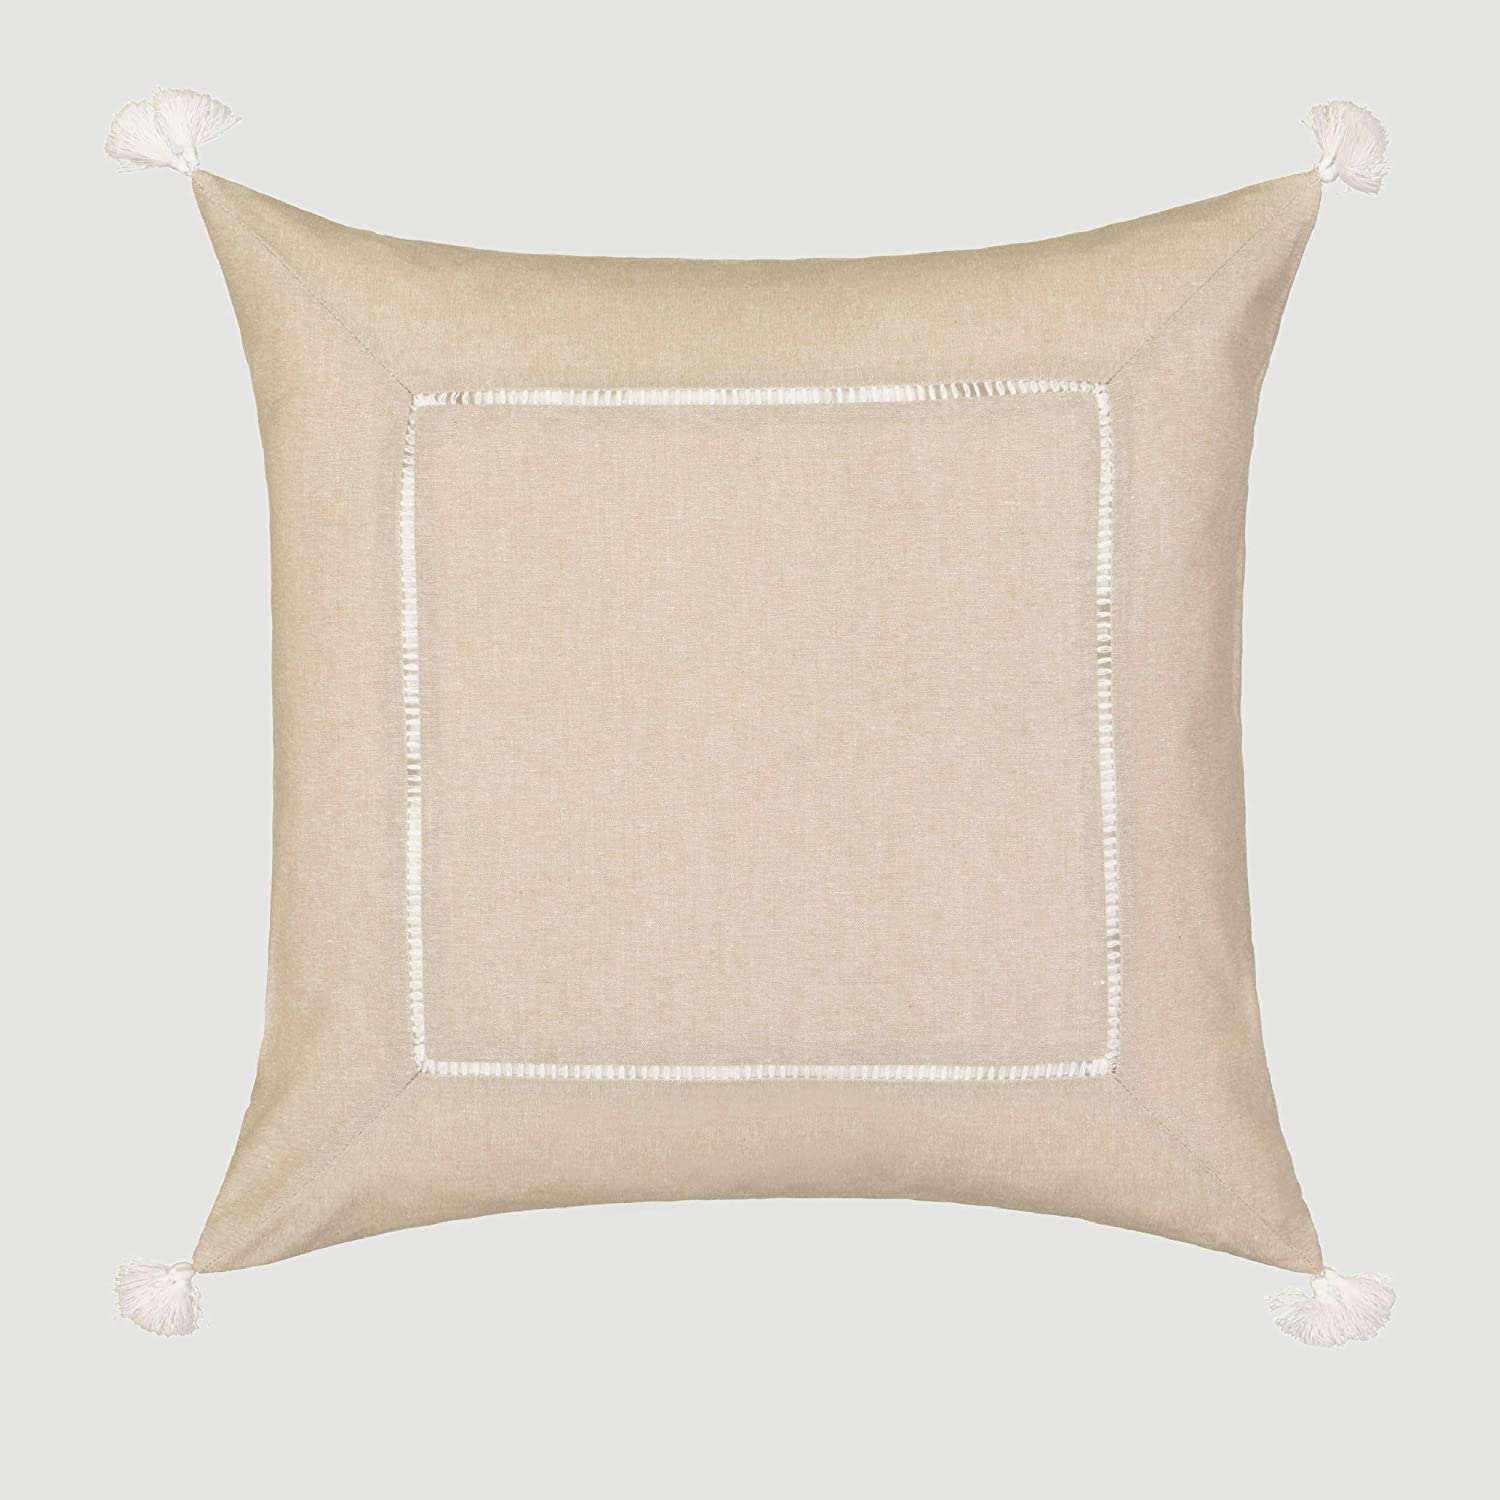 Vue cheap JILLIANA Decorative Pillow for 25% OFF Living Bedroom Roo Couch Sofa